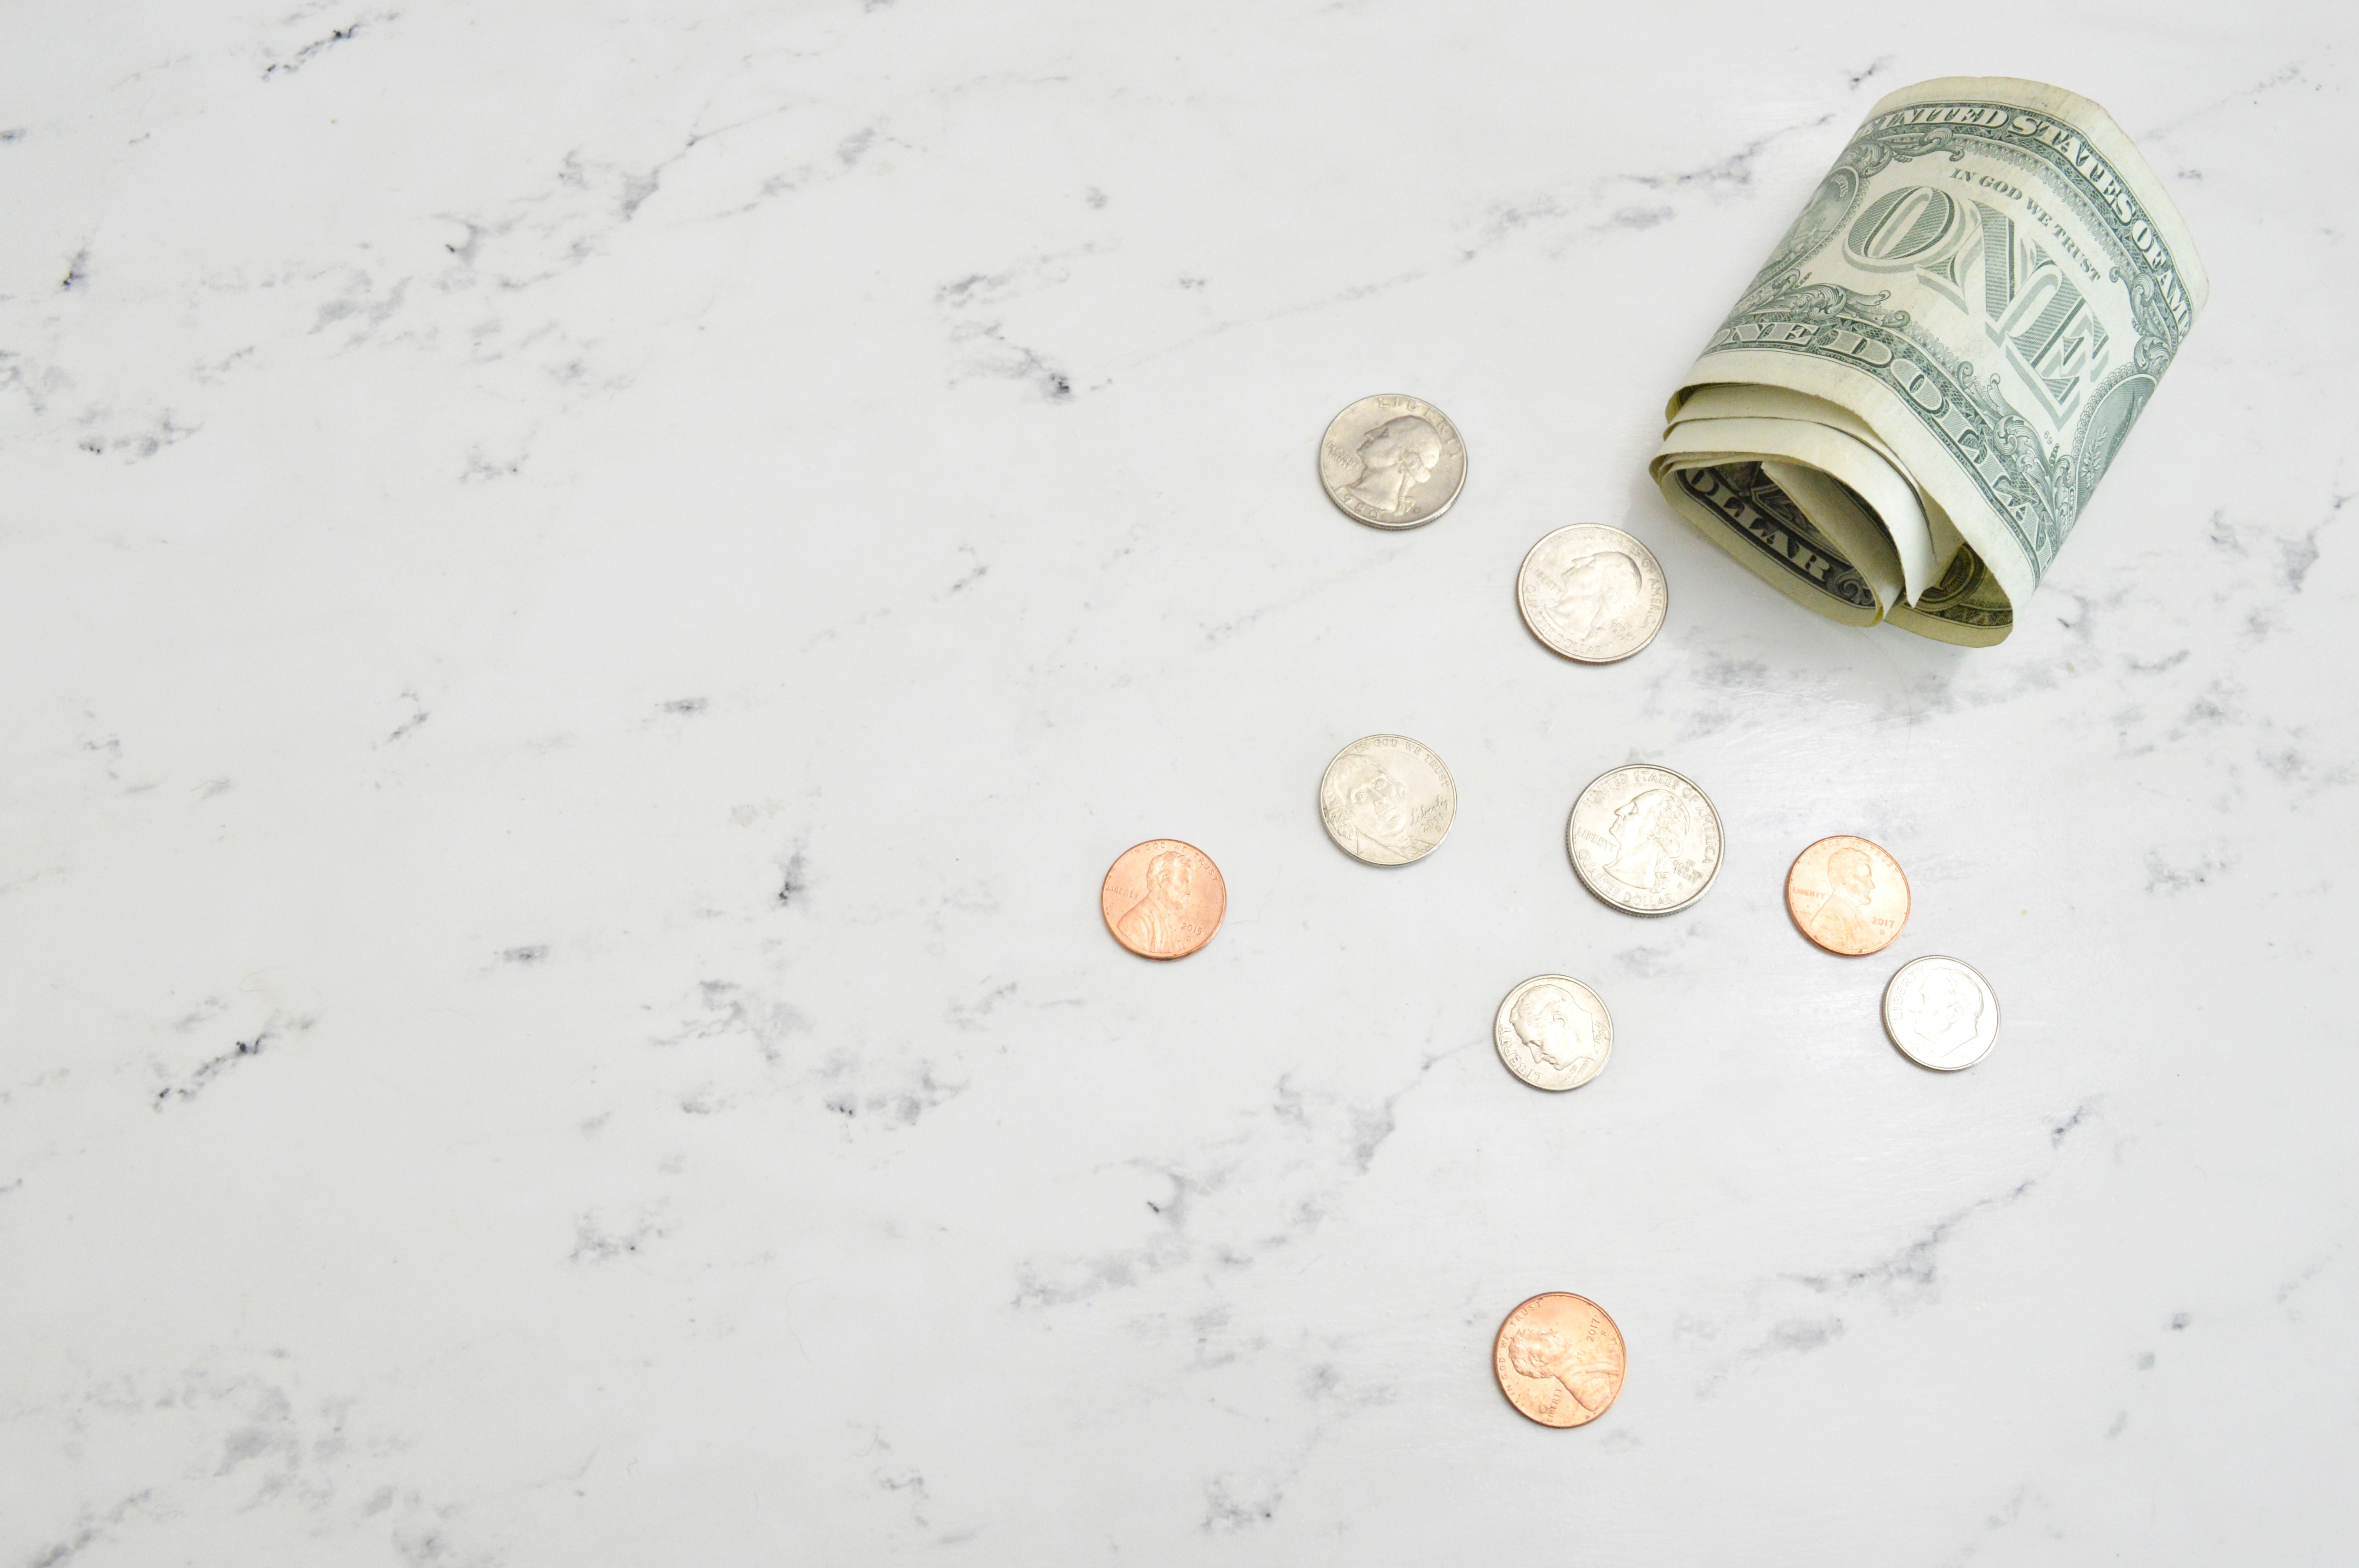 Loans 101: How to Use an Interest Reserve